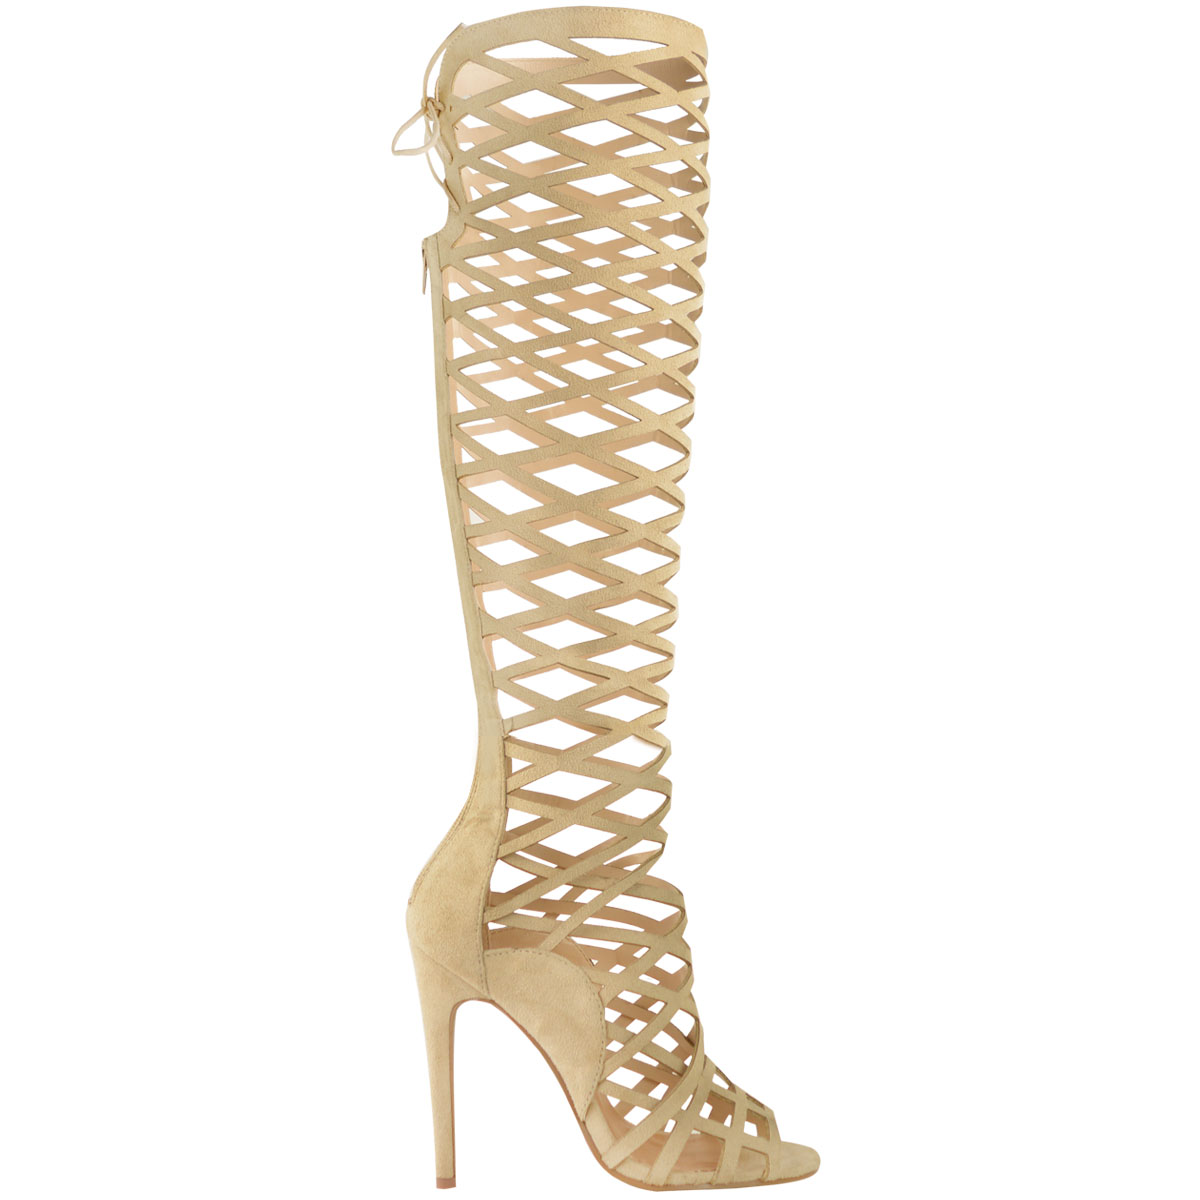 LADIES Damenschuhe HIGH CUT OUT LACE KNEE HIGH Damenschuhe HEEL Stiefel GLADIATOR SANDALS STRAPPY SIZE 0dc7ad